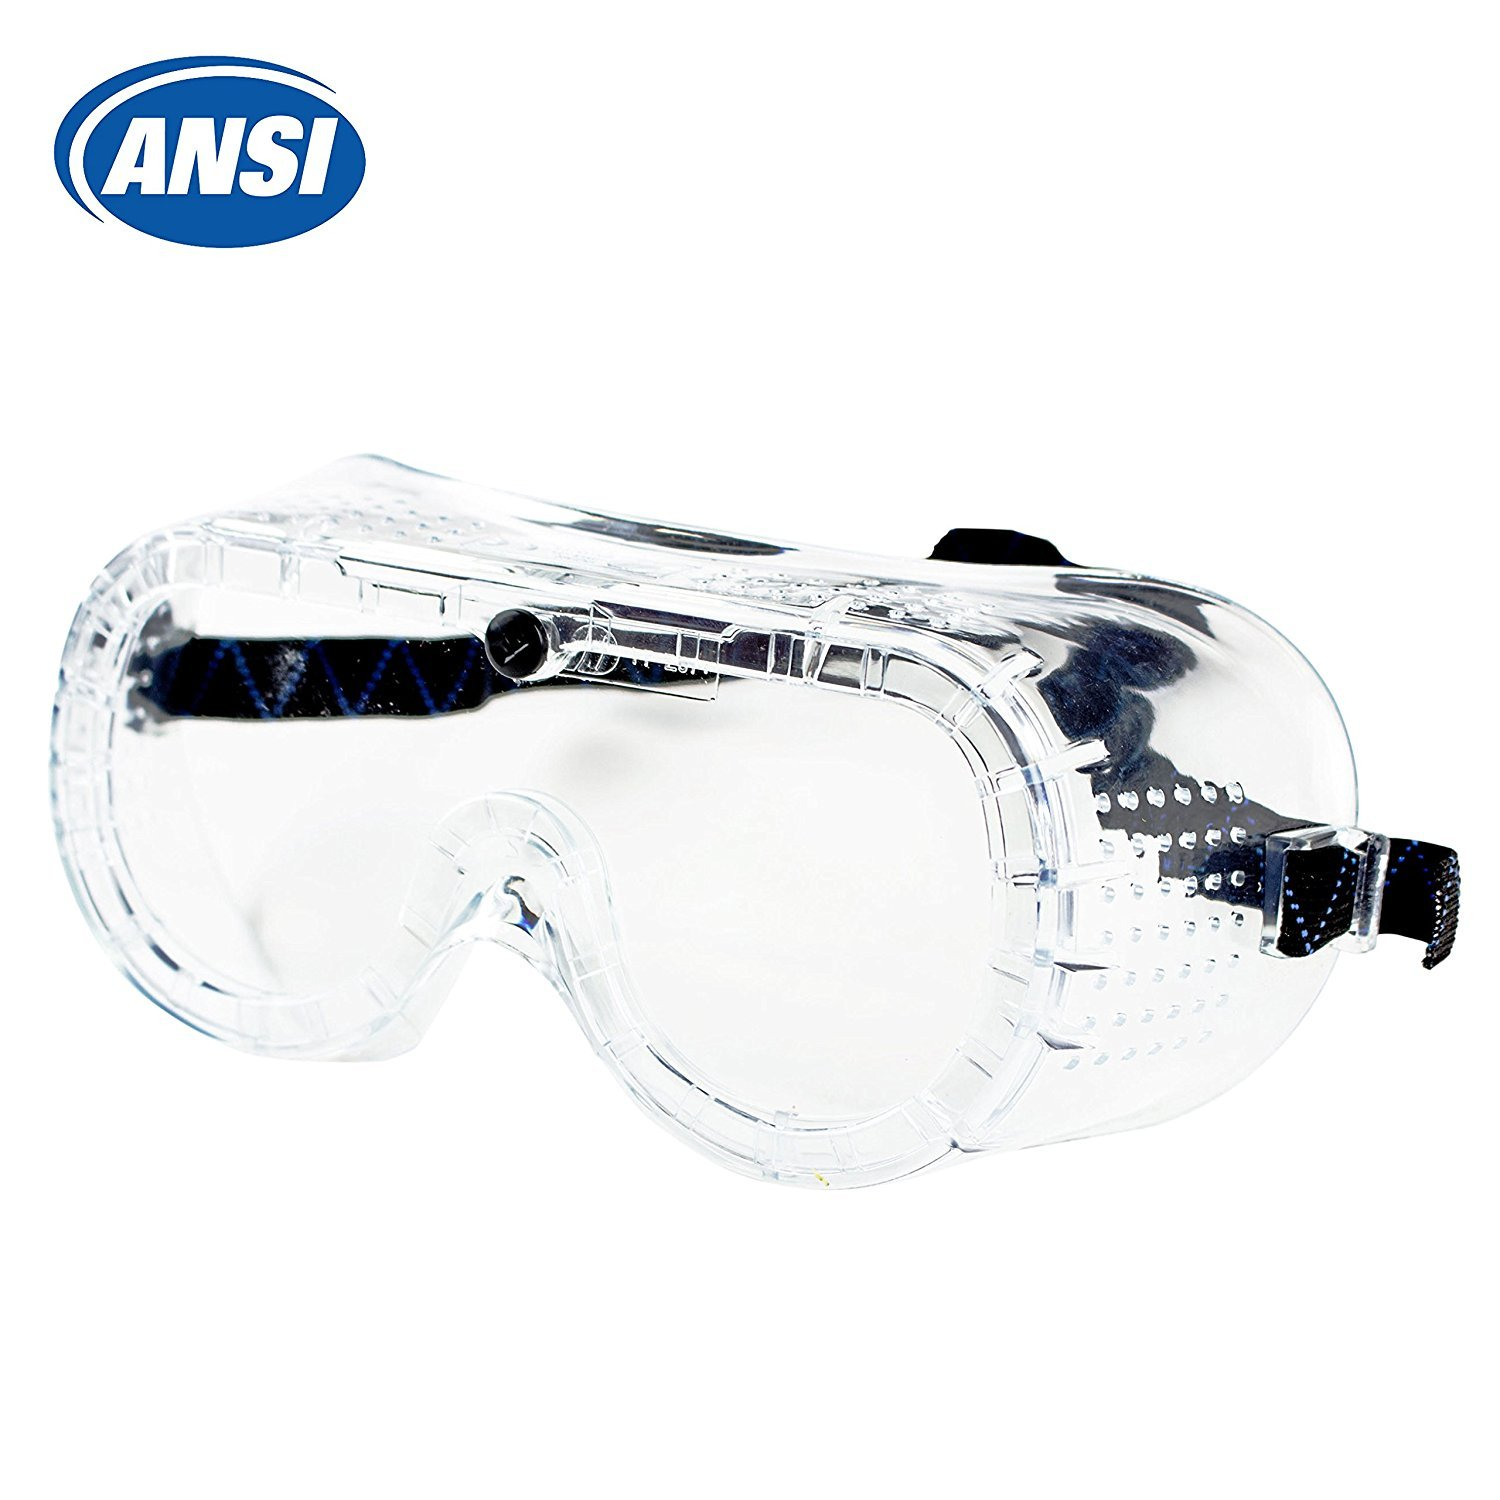 RK Safety RK-GG101 Heavy duty Industrial Protective Chemical Splash Safety Goggles, Glasses | Crystal Clear, Anti-Fog Design, High Impact Resistance (Pack of 12, GG101) by RK SAFETY